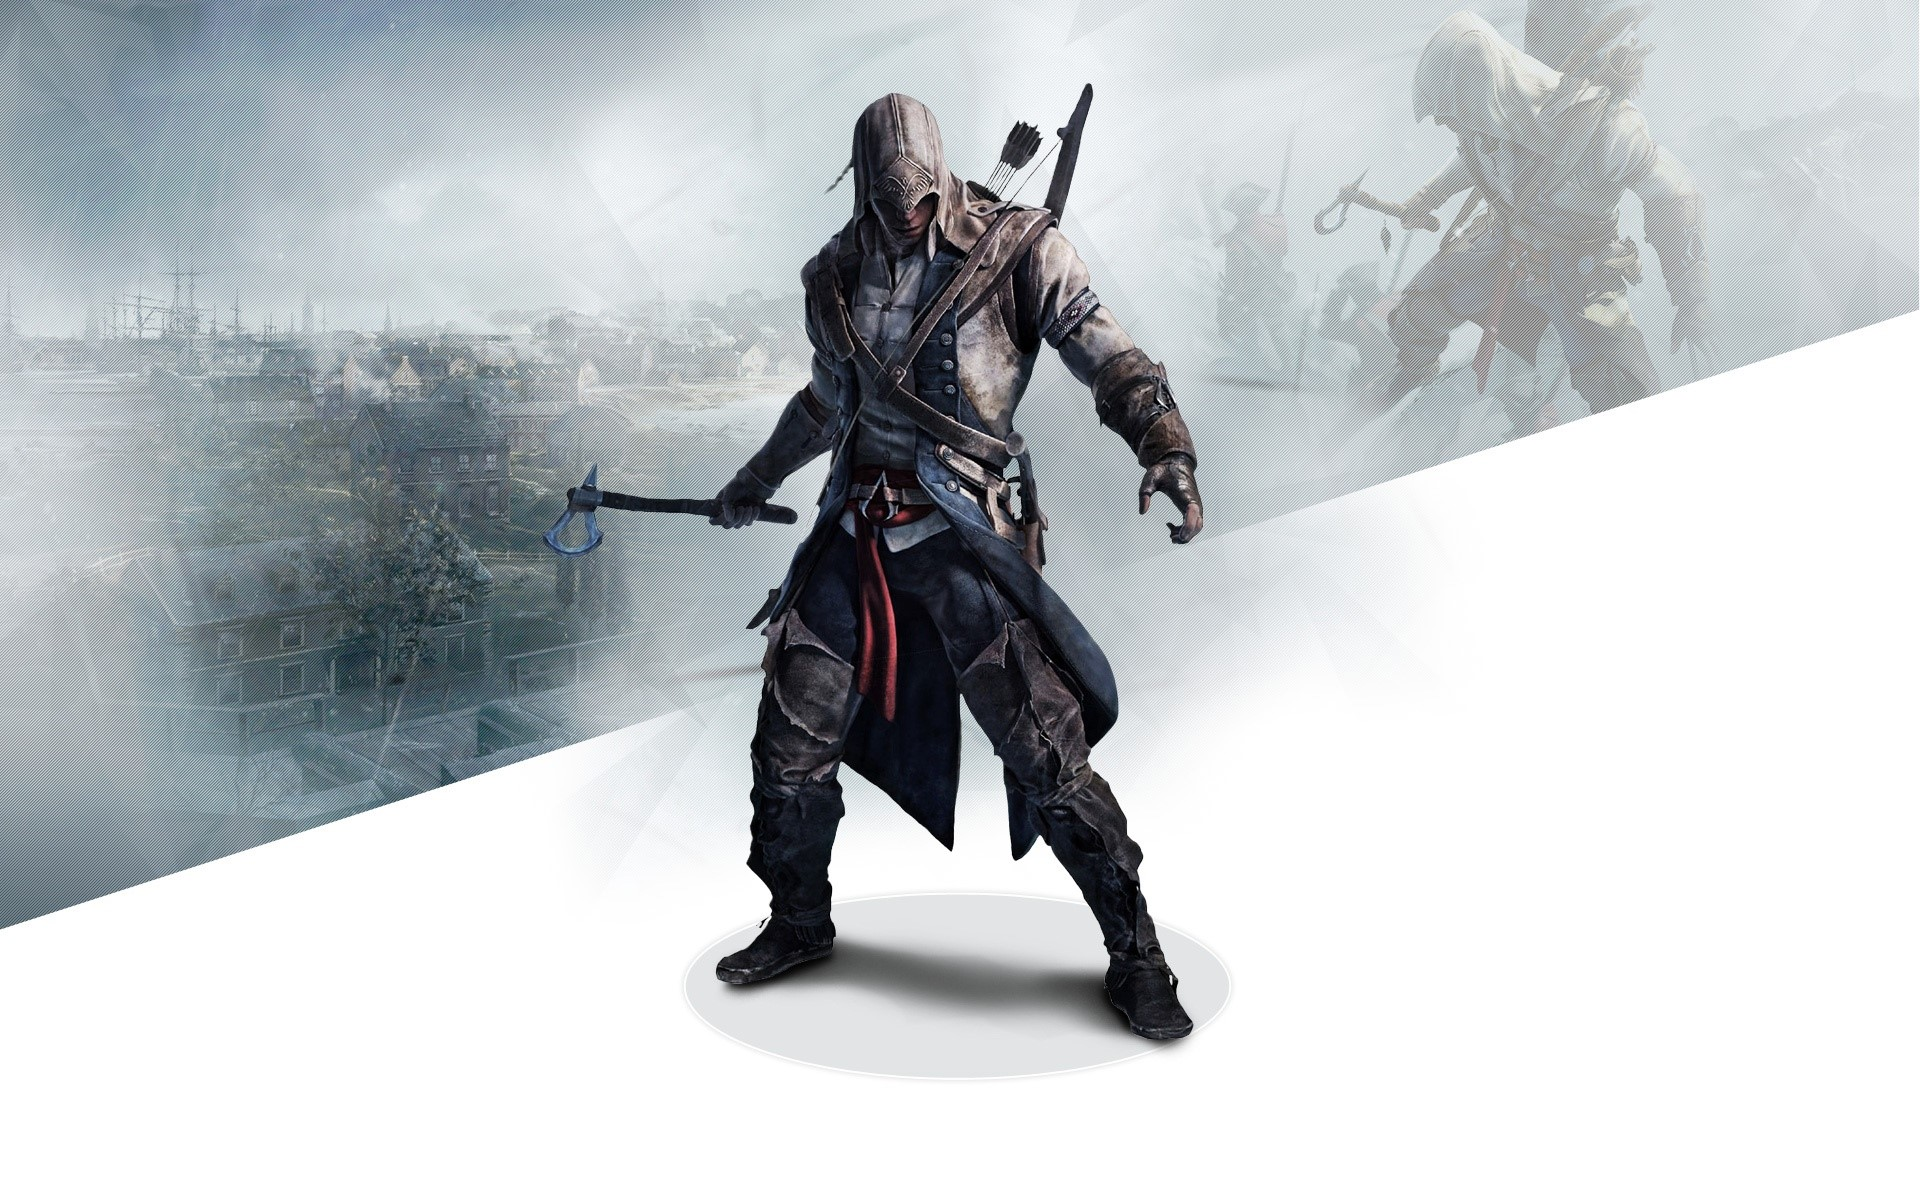 Fondos de pantalla Assassins Creed Altairs Chronicles